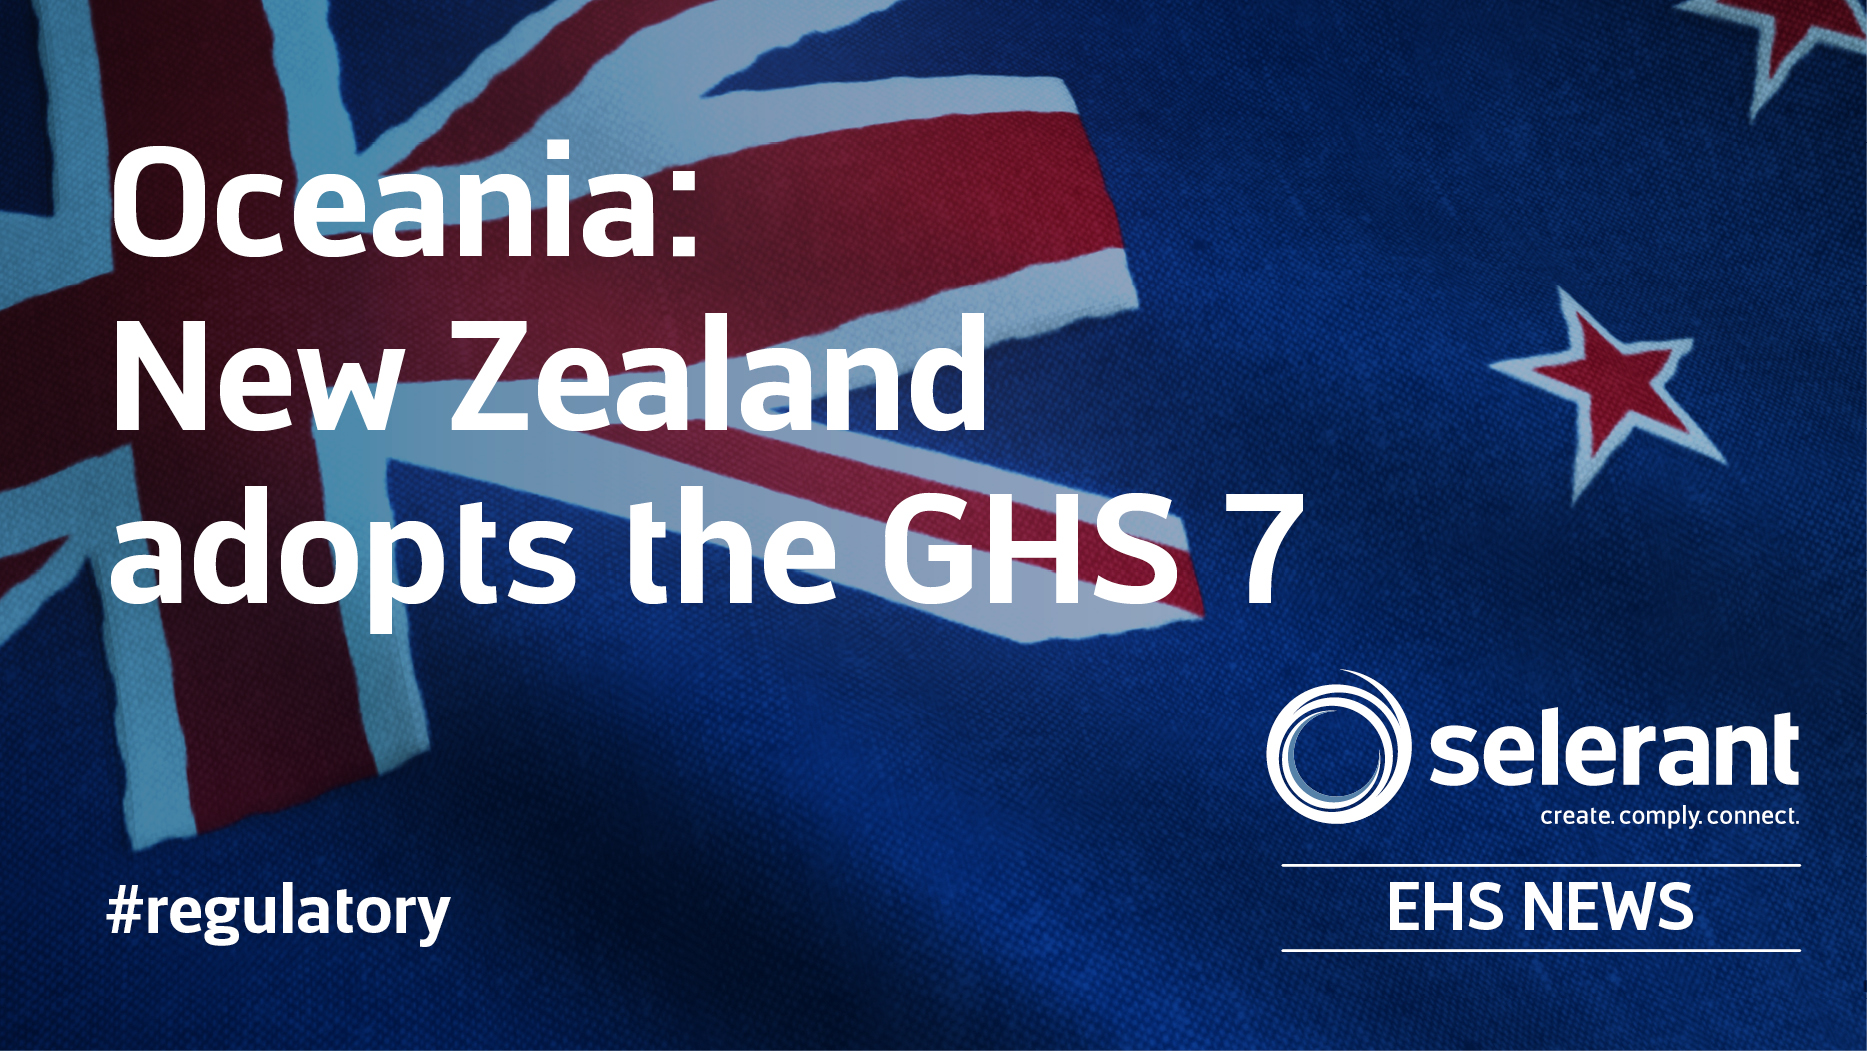 Oceania: New Zealand adopts the GHS 7